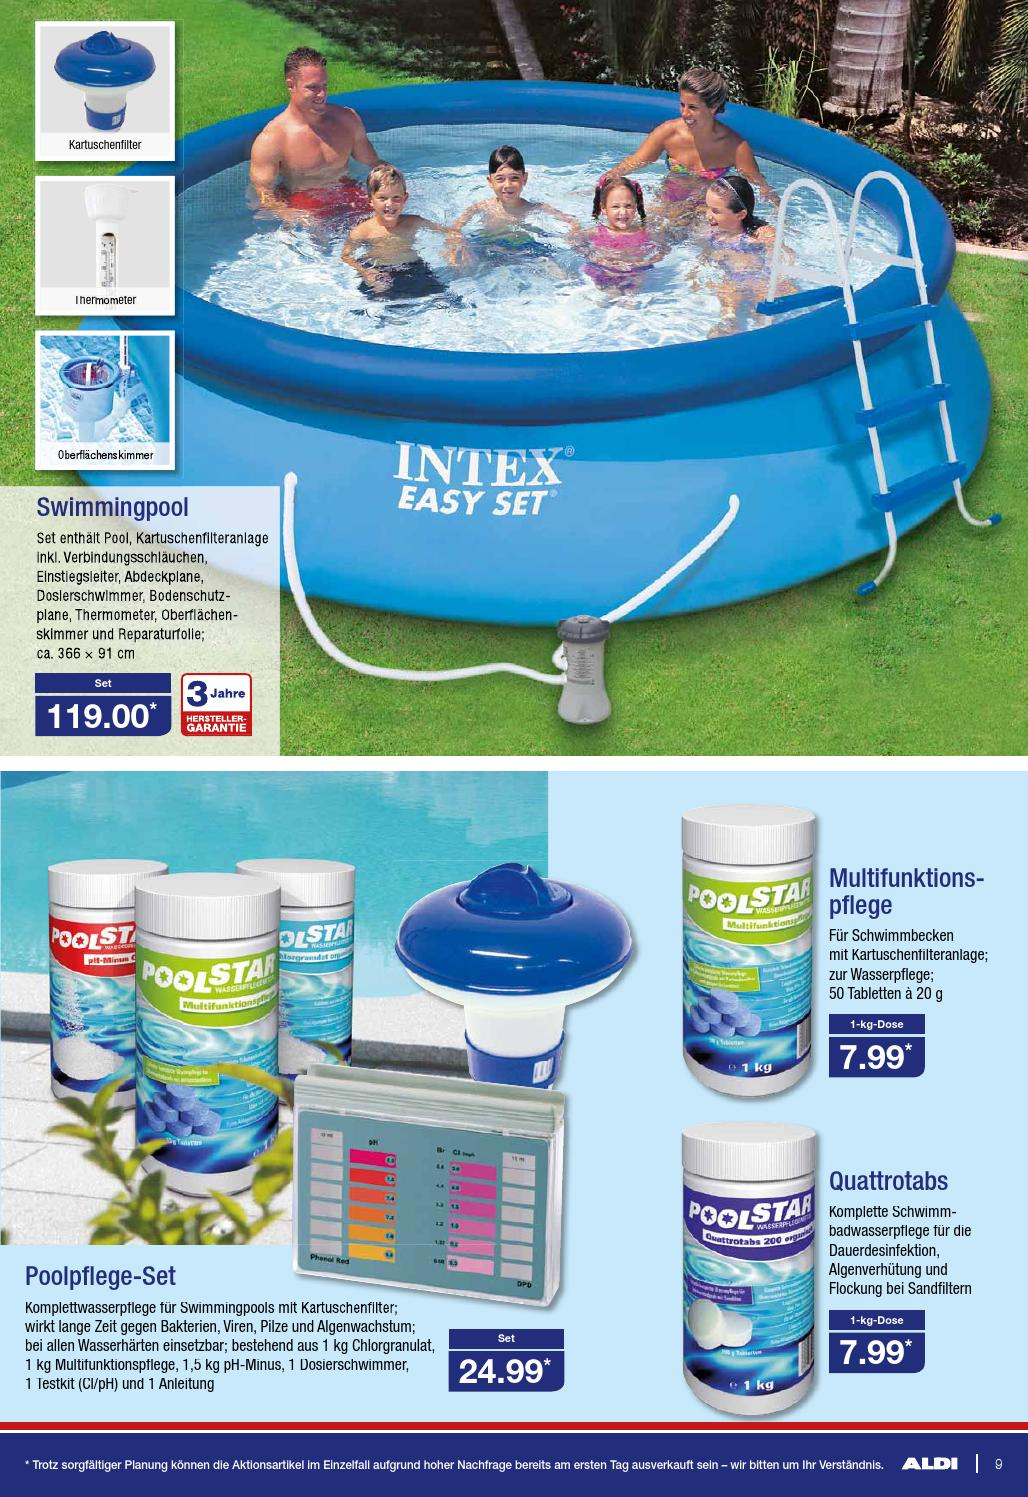 Aldi Intex Pool Intex Pool Garantie